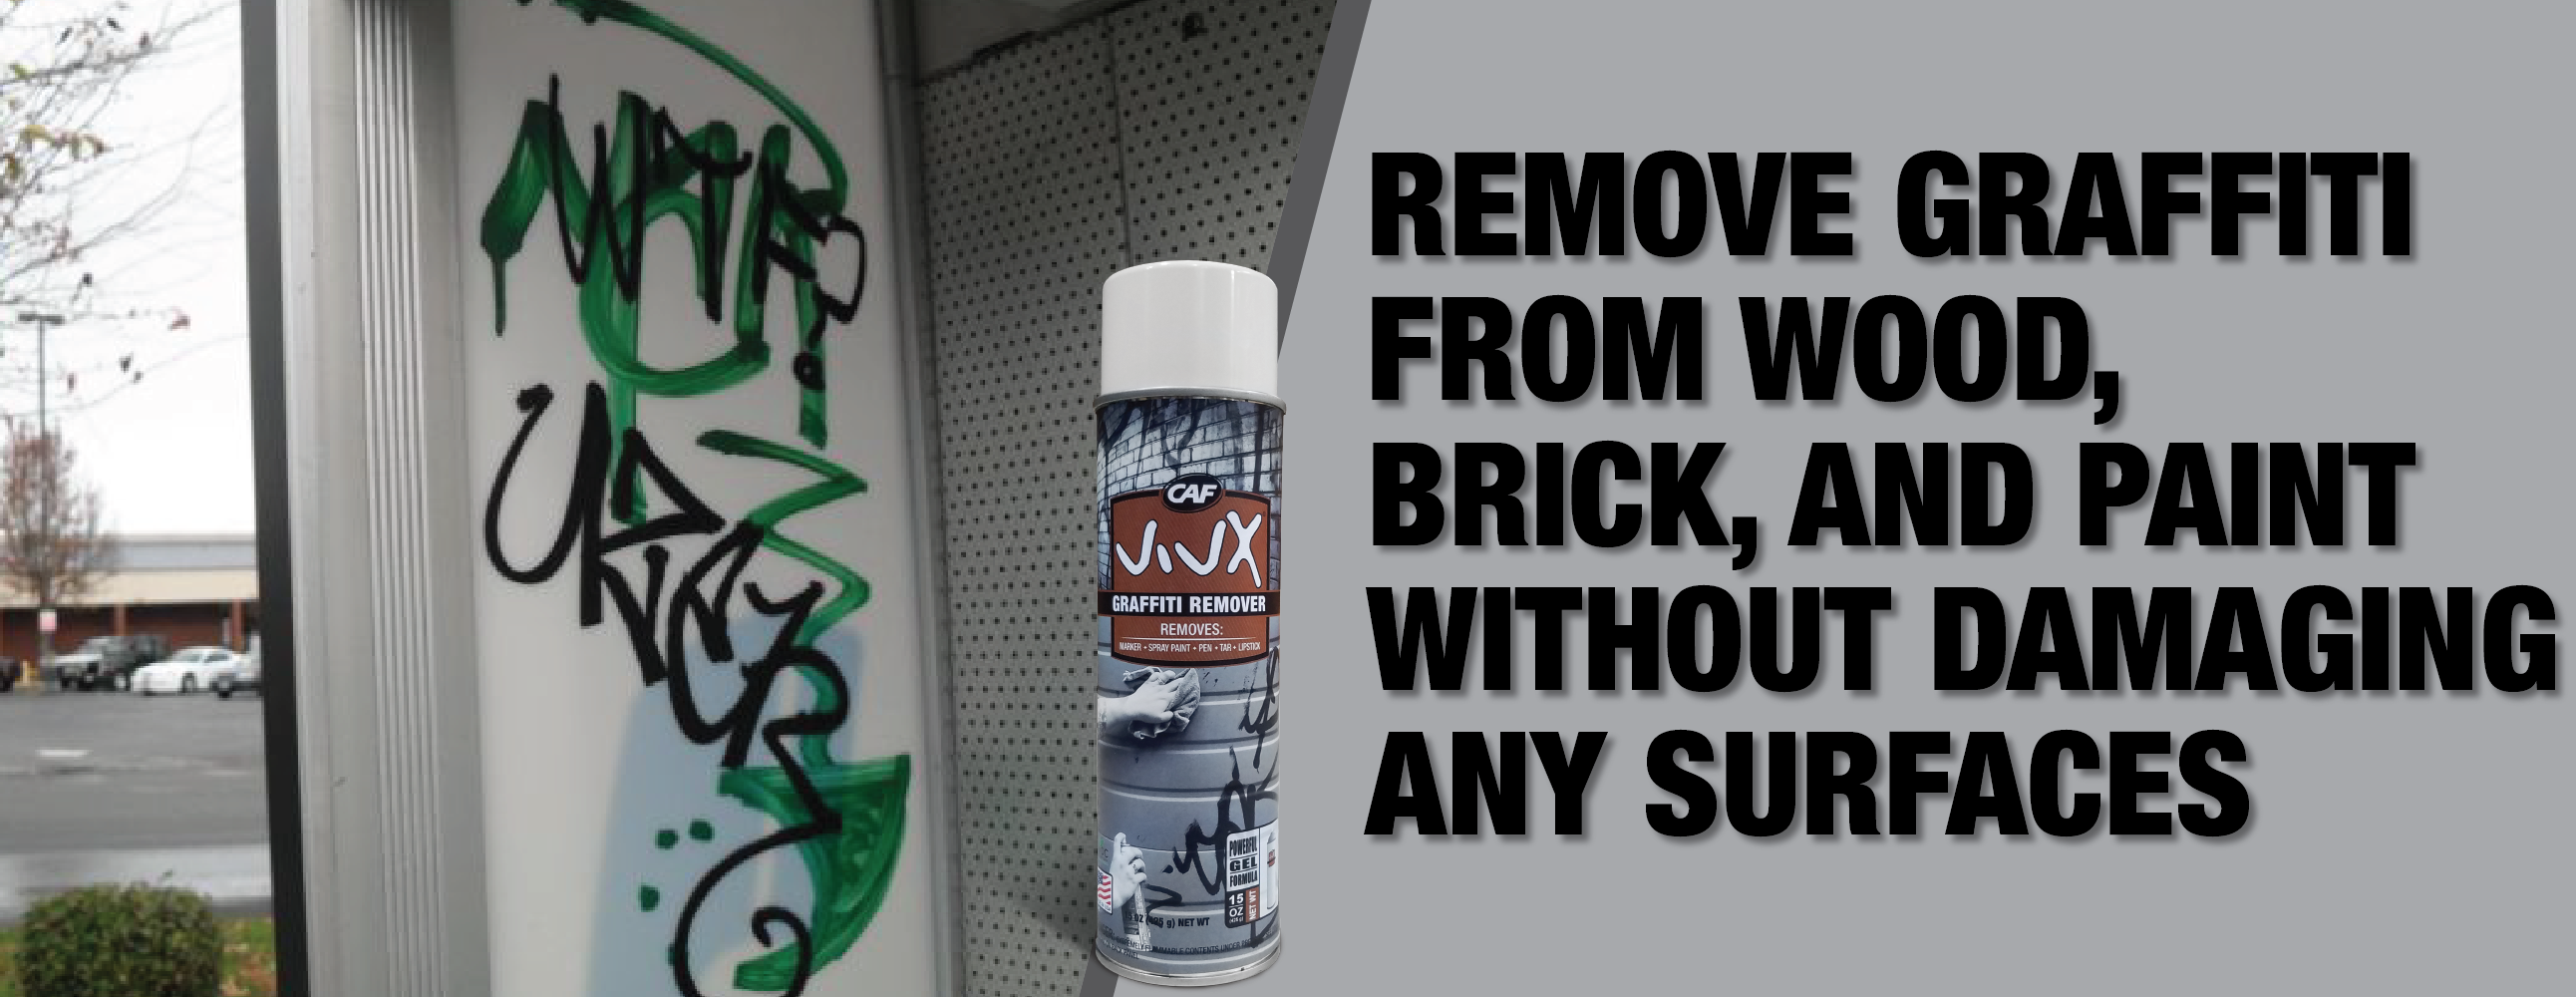 How To Safely Remove Graffiti